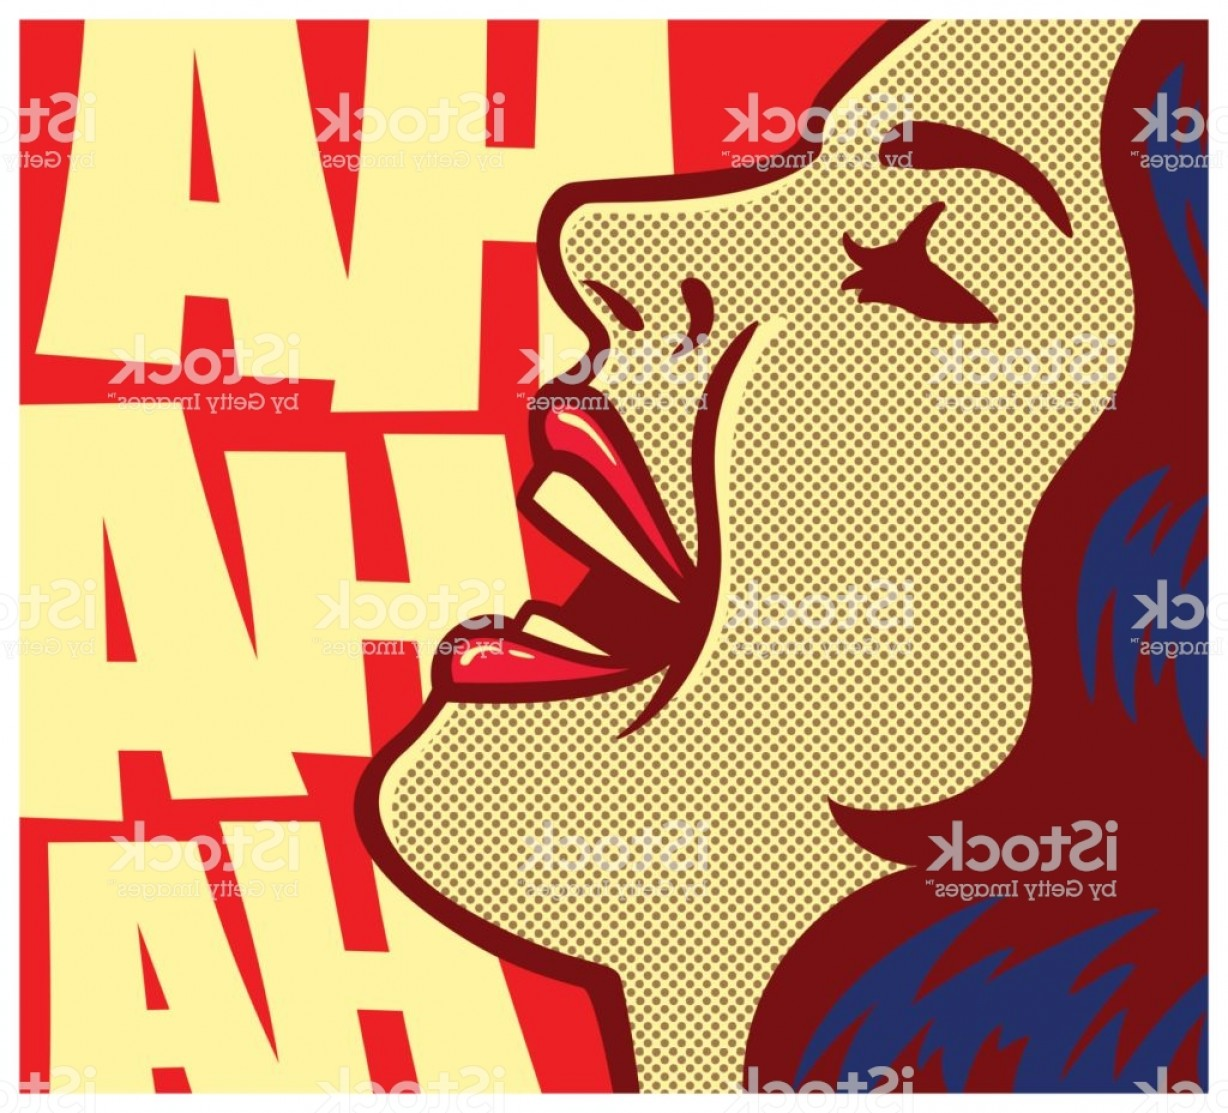 Comic Book Vector Graphics: Pop Art Comic Book Woman Laughing Out Loud Vector Illustration Gm